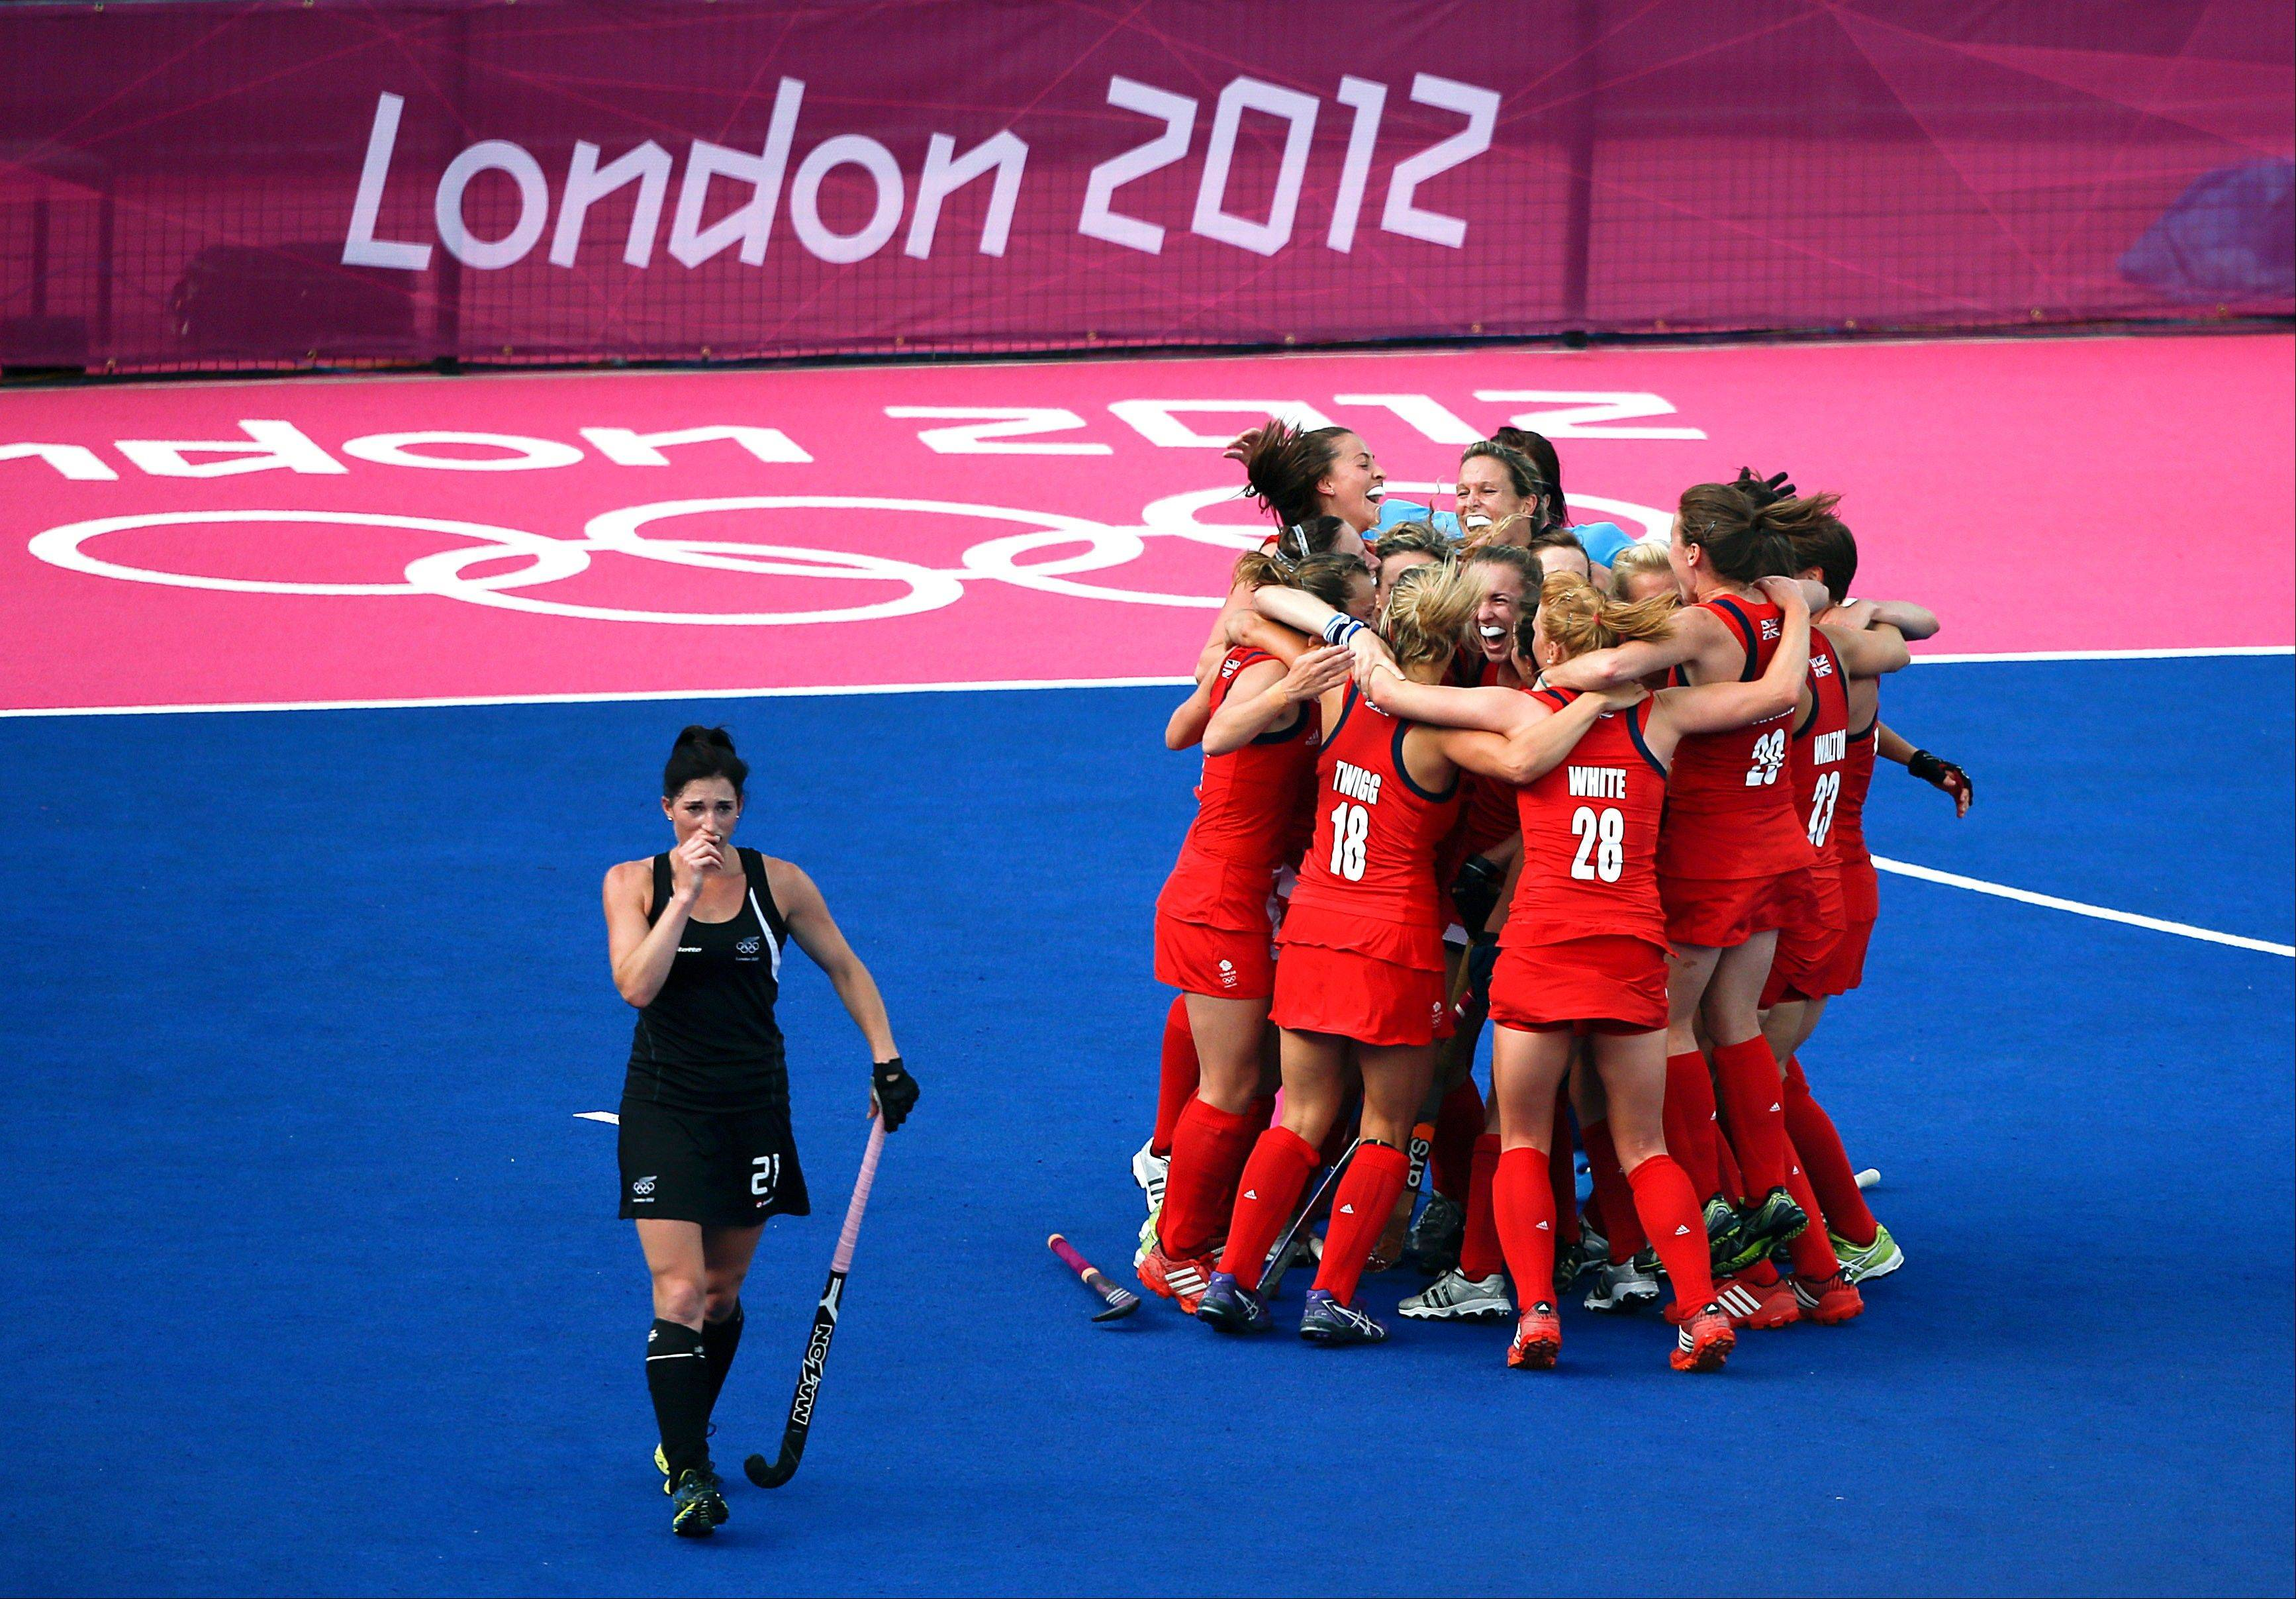 New Zealand's Cathryn Finlayson, left, walks off the field as Britain's hockey players celebrate their 3-1 win in a women's field hockey bronze medal match at the 2012 Summer Olympics, London, Friday, Aug. 10, 2012.